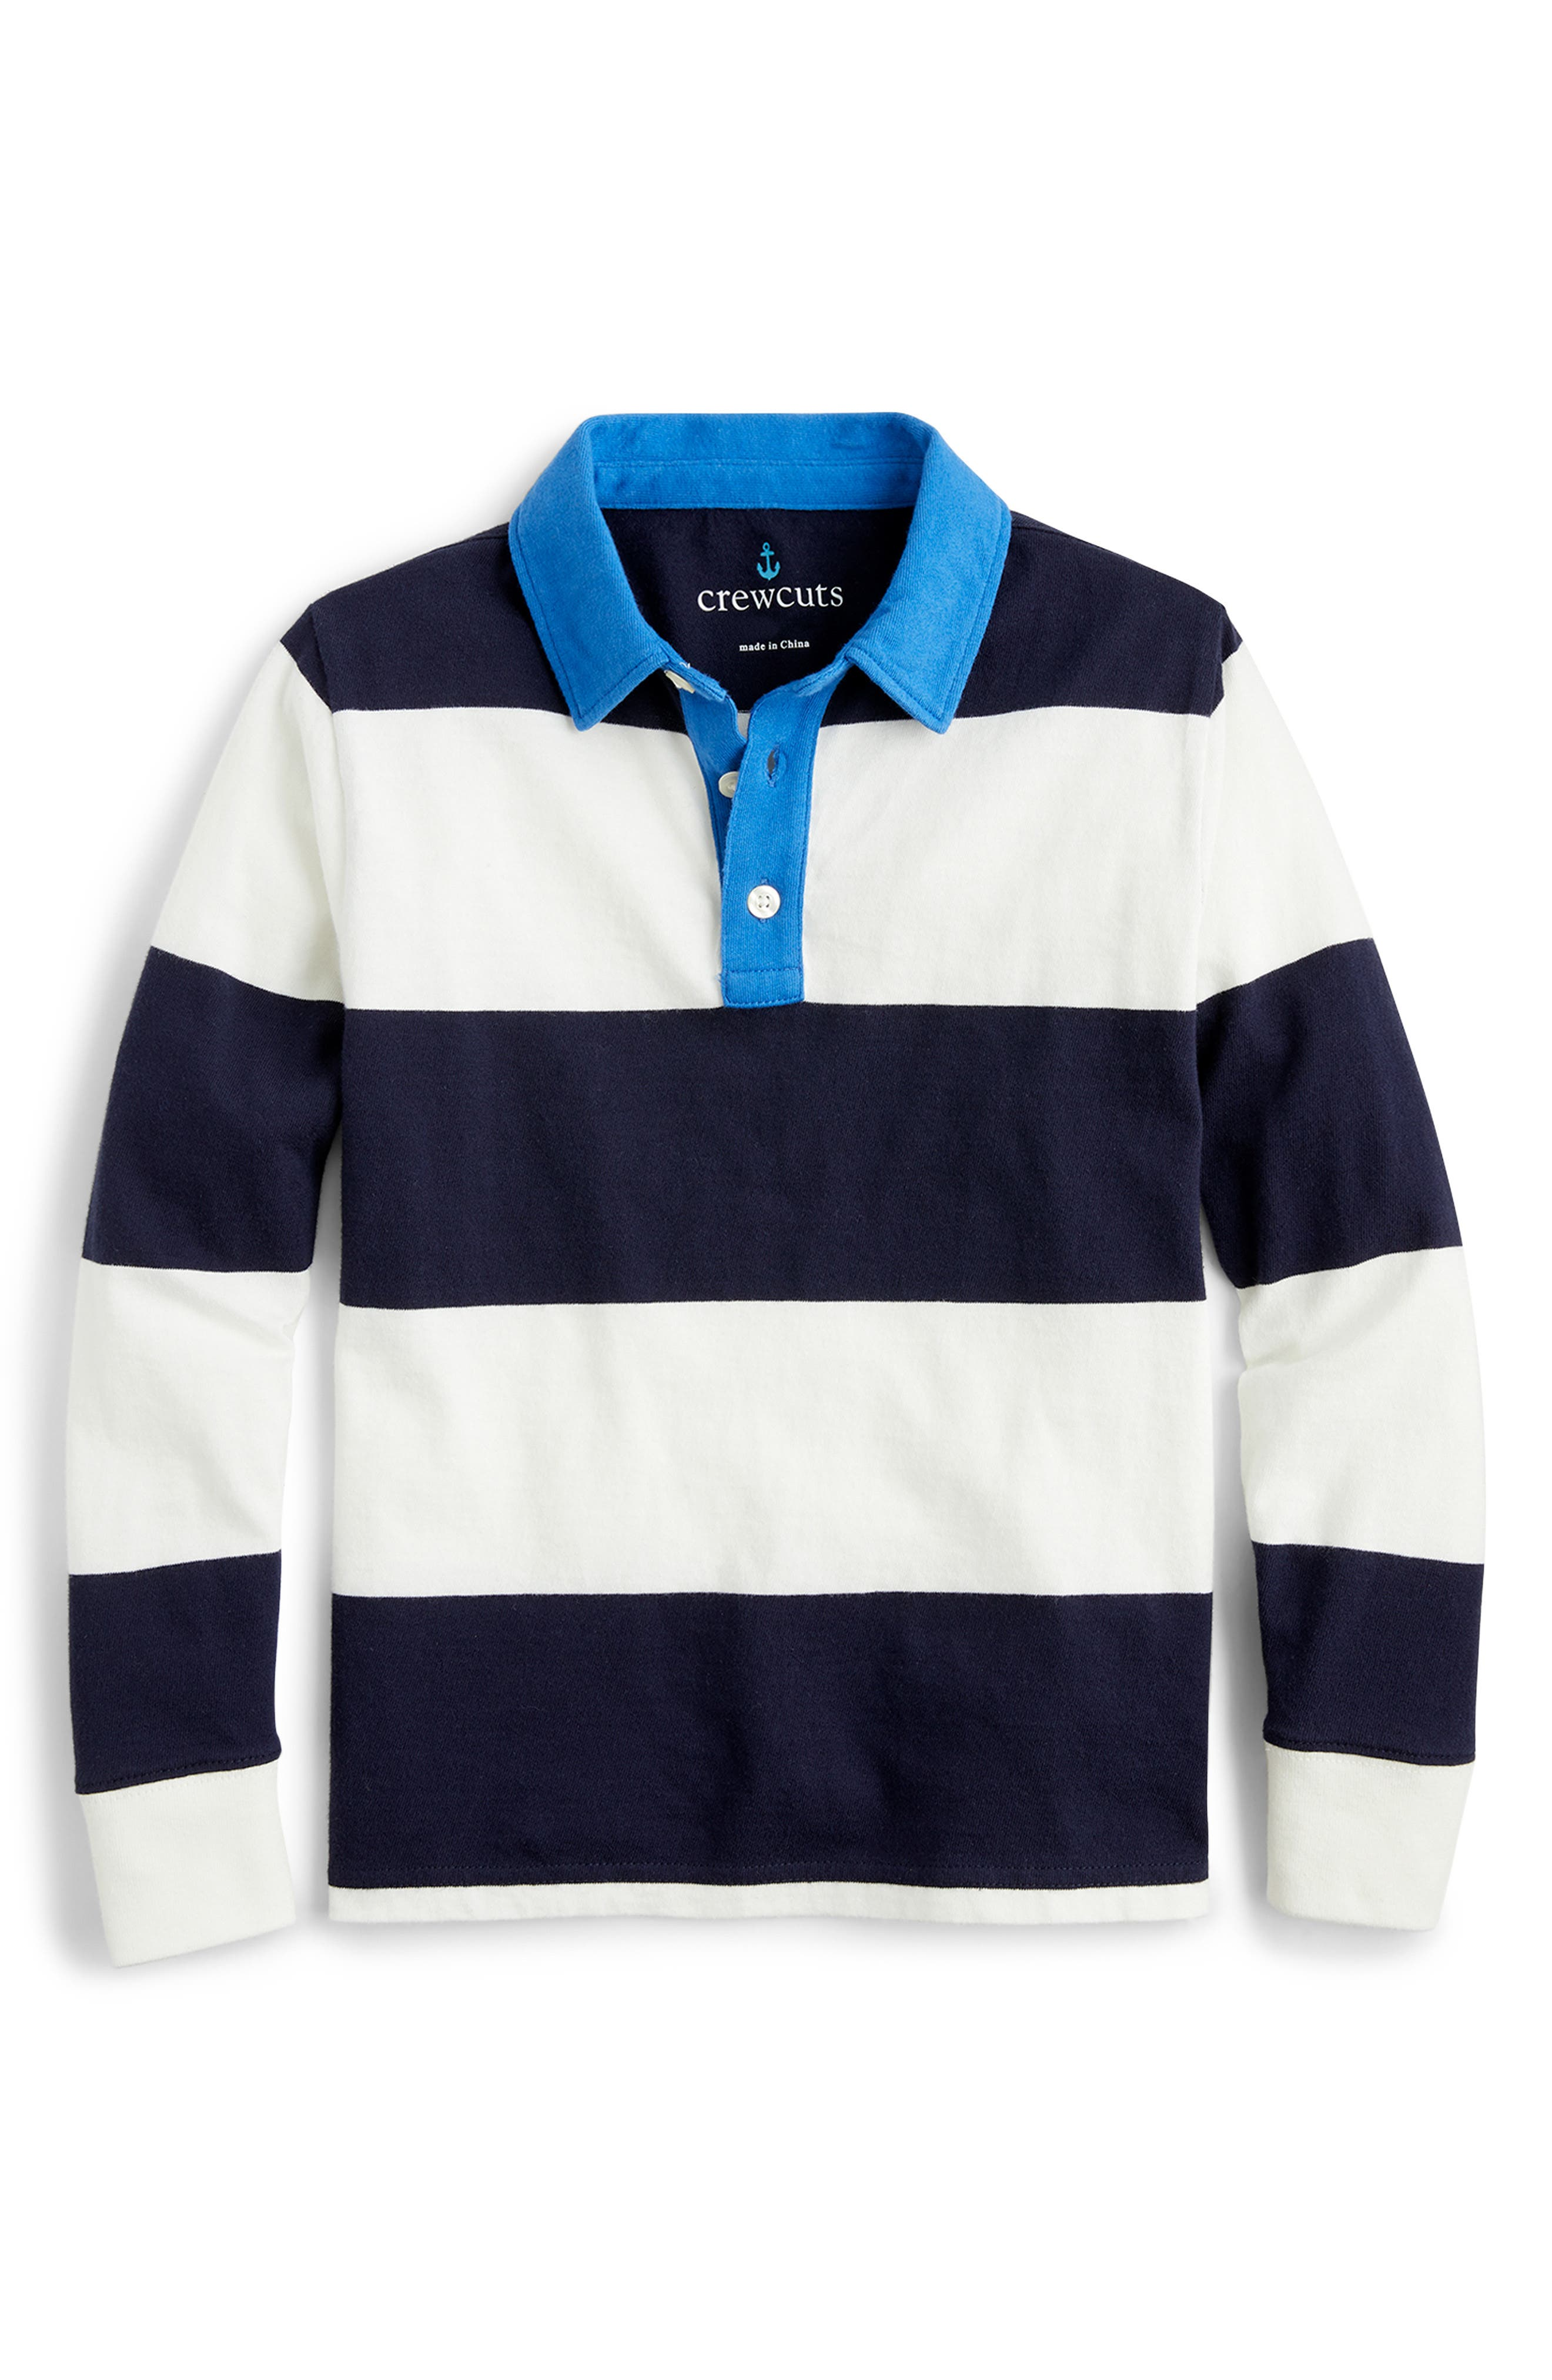 J Crew CREWCUTS Boys White Long Sleeve Polo Shirt With Pocket Size 3T